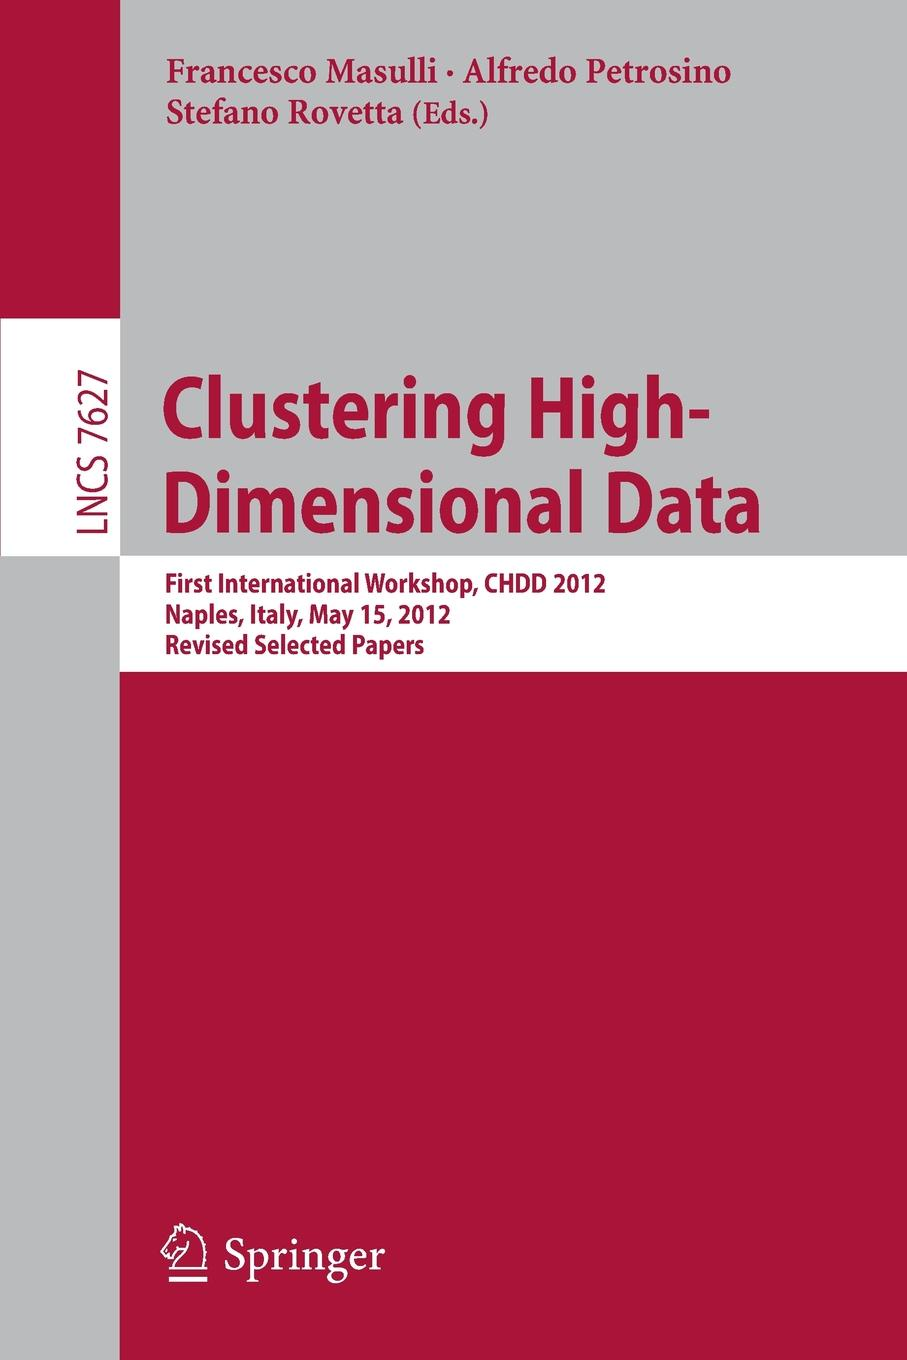 Clustering High--Dimensional Data. First International Workshop, CHDD 2012, Naples, Italy, May 15, 2012, Revised Selected Papers hybrid models for high dimensional clustering and pattern discovery